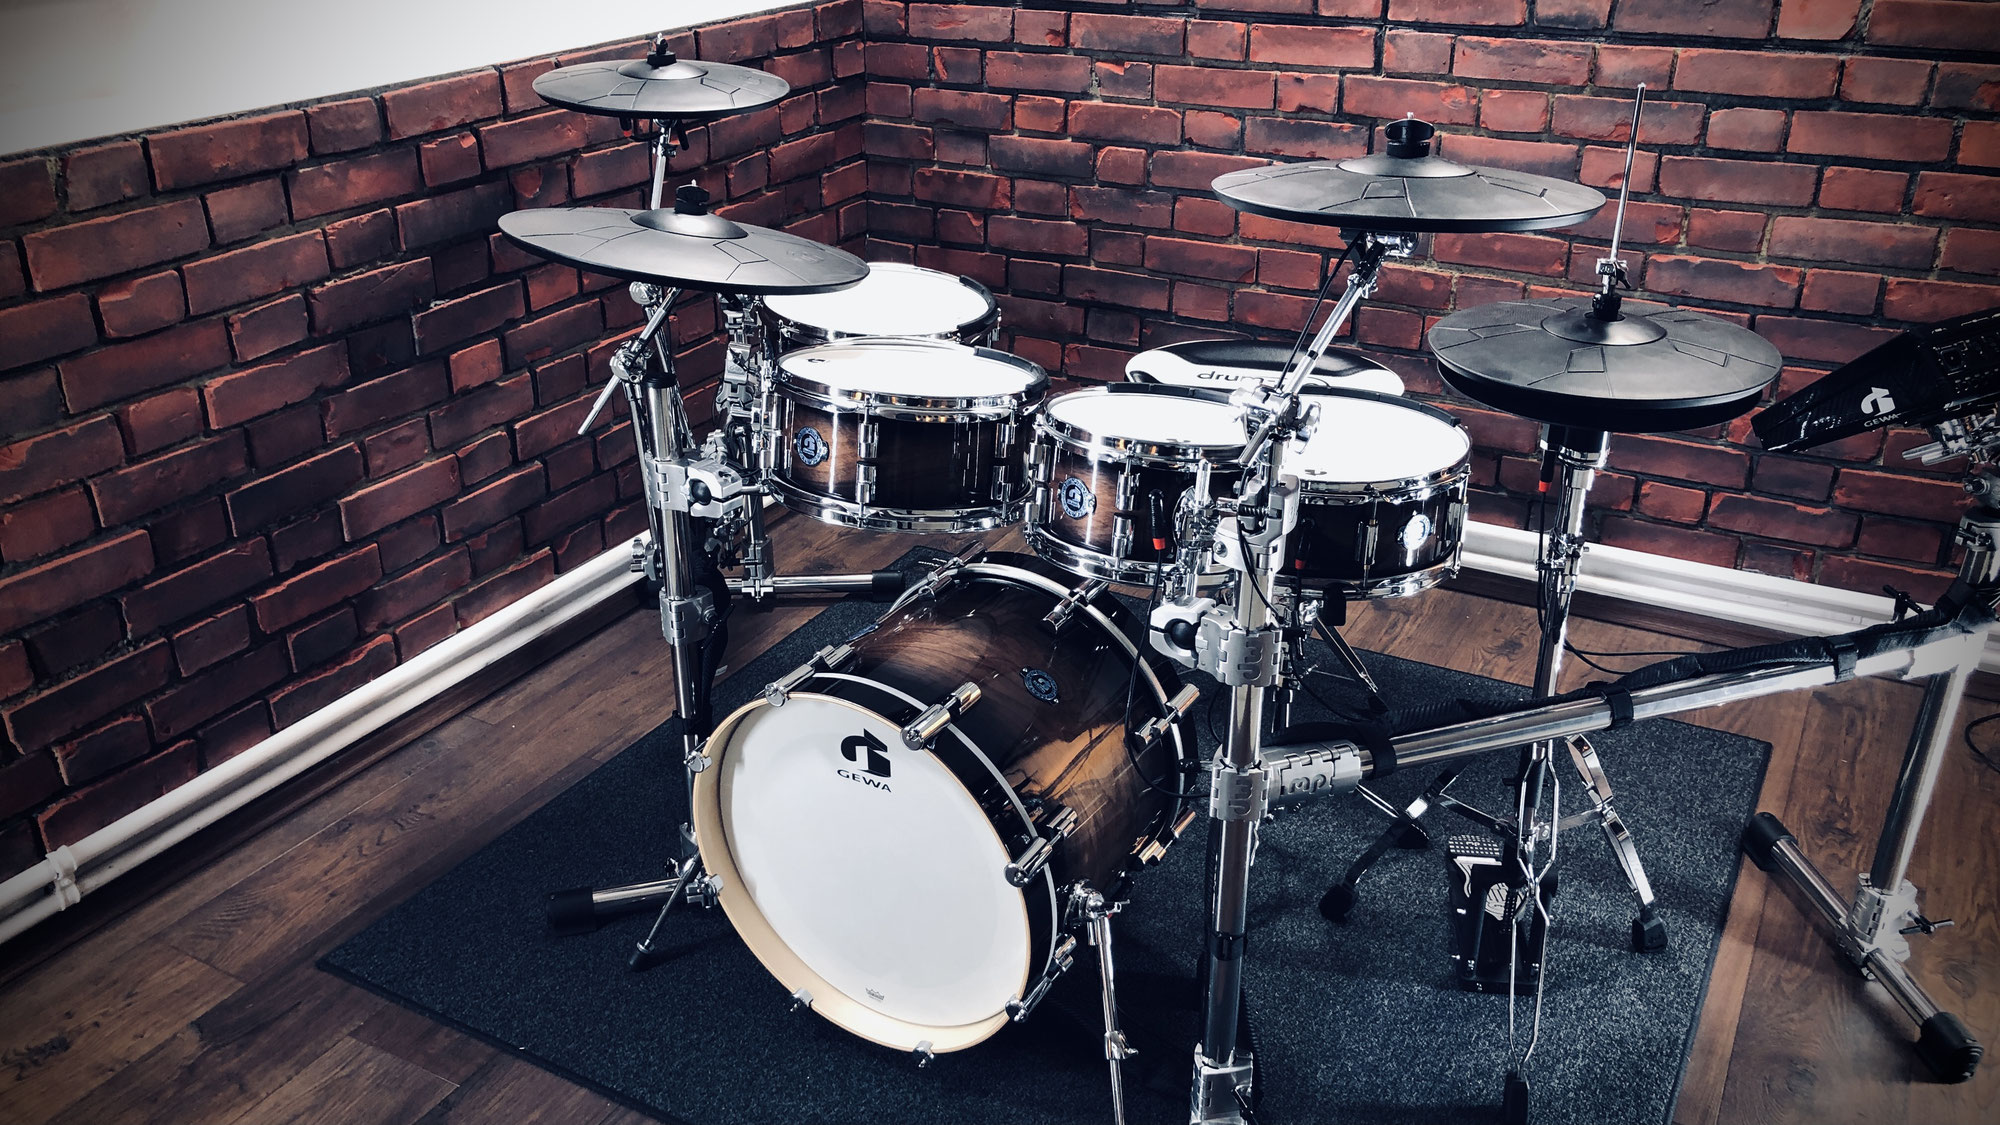 GEWA G9 electronic drums demo video production